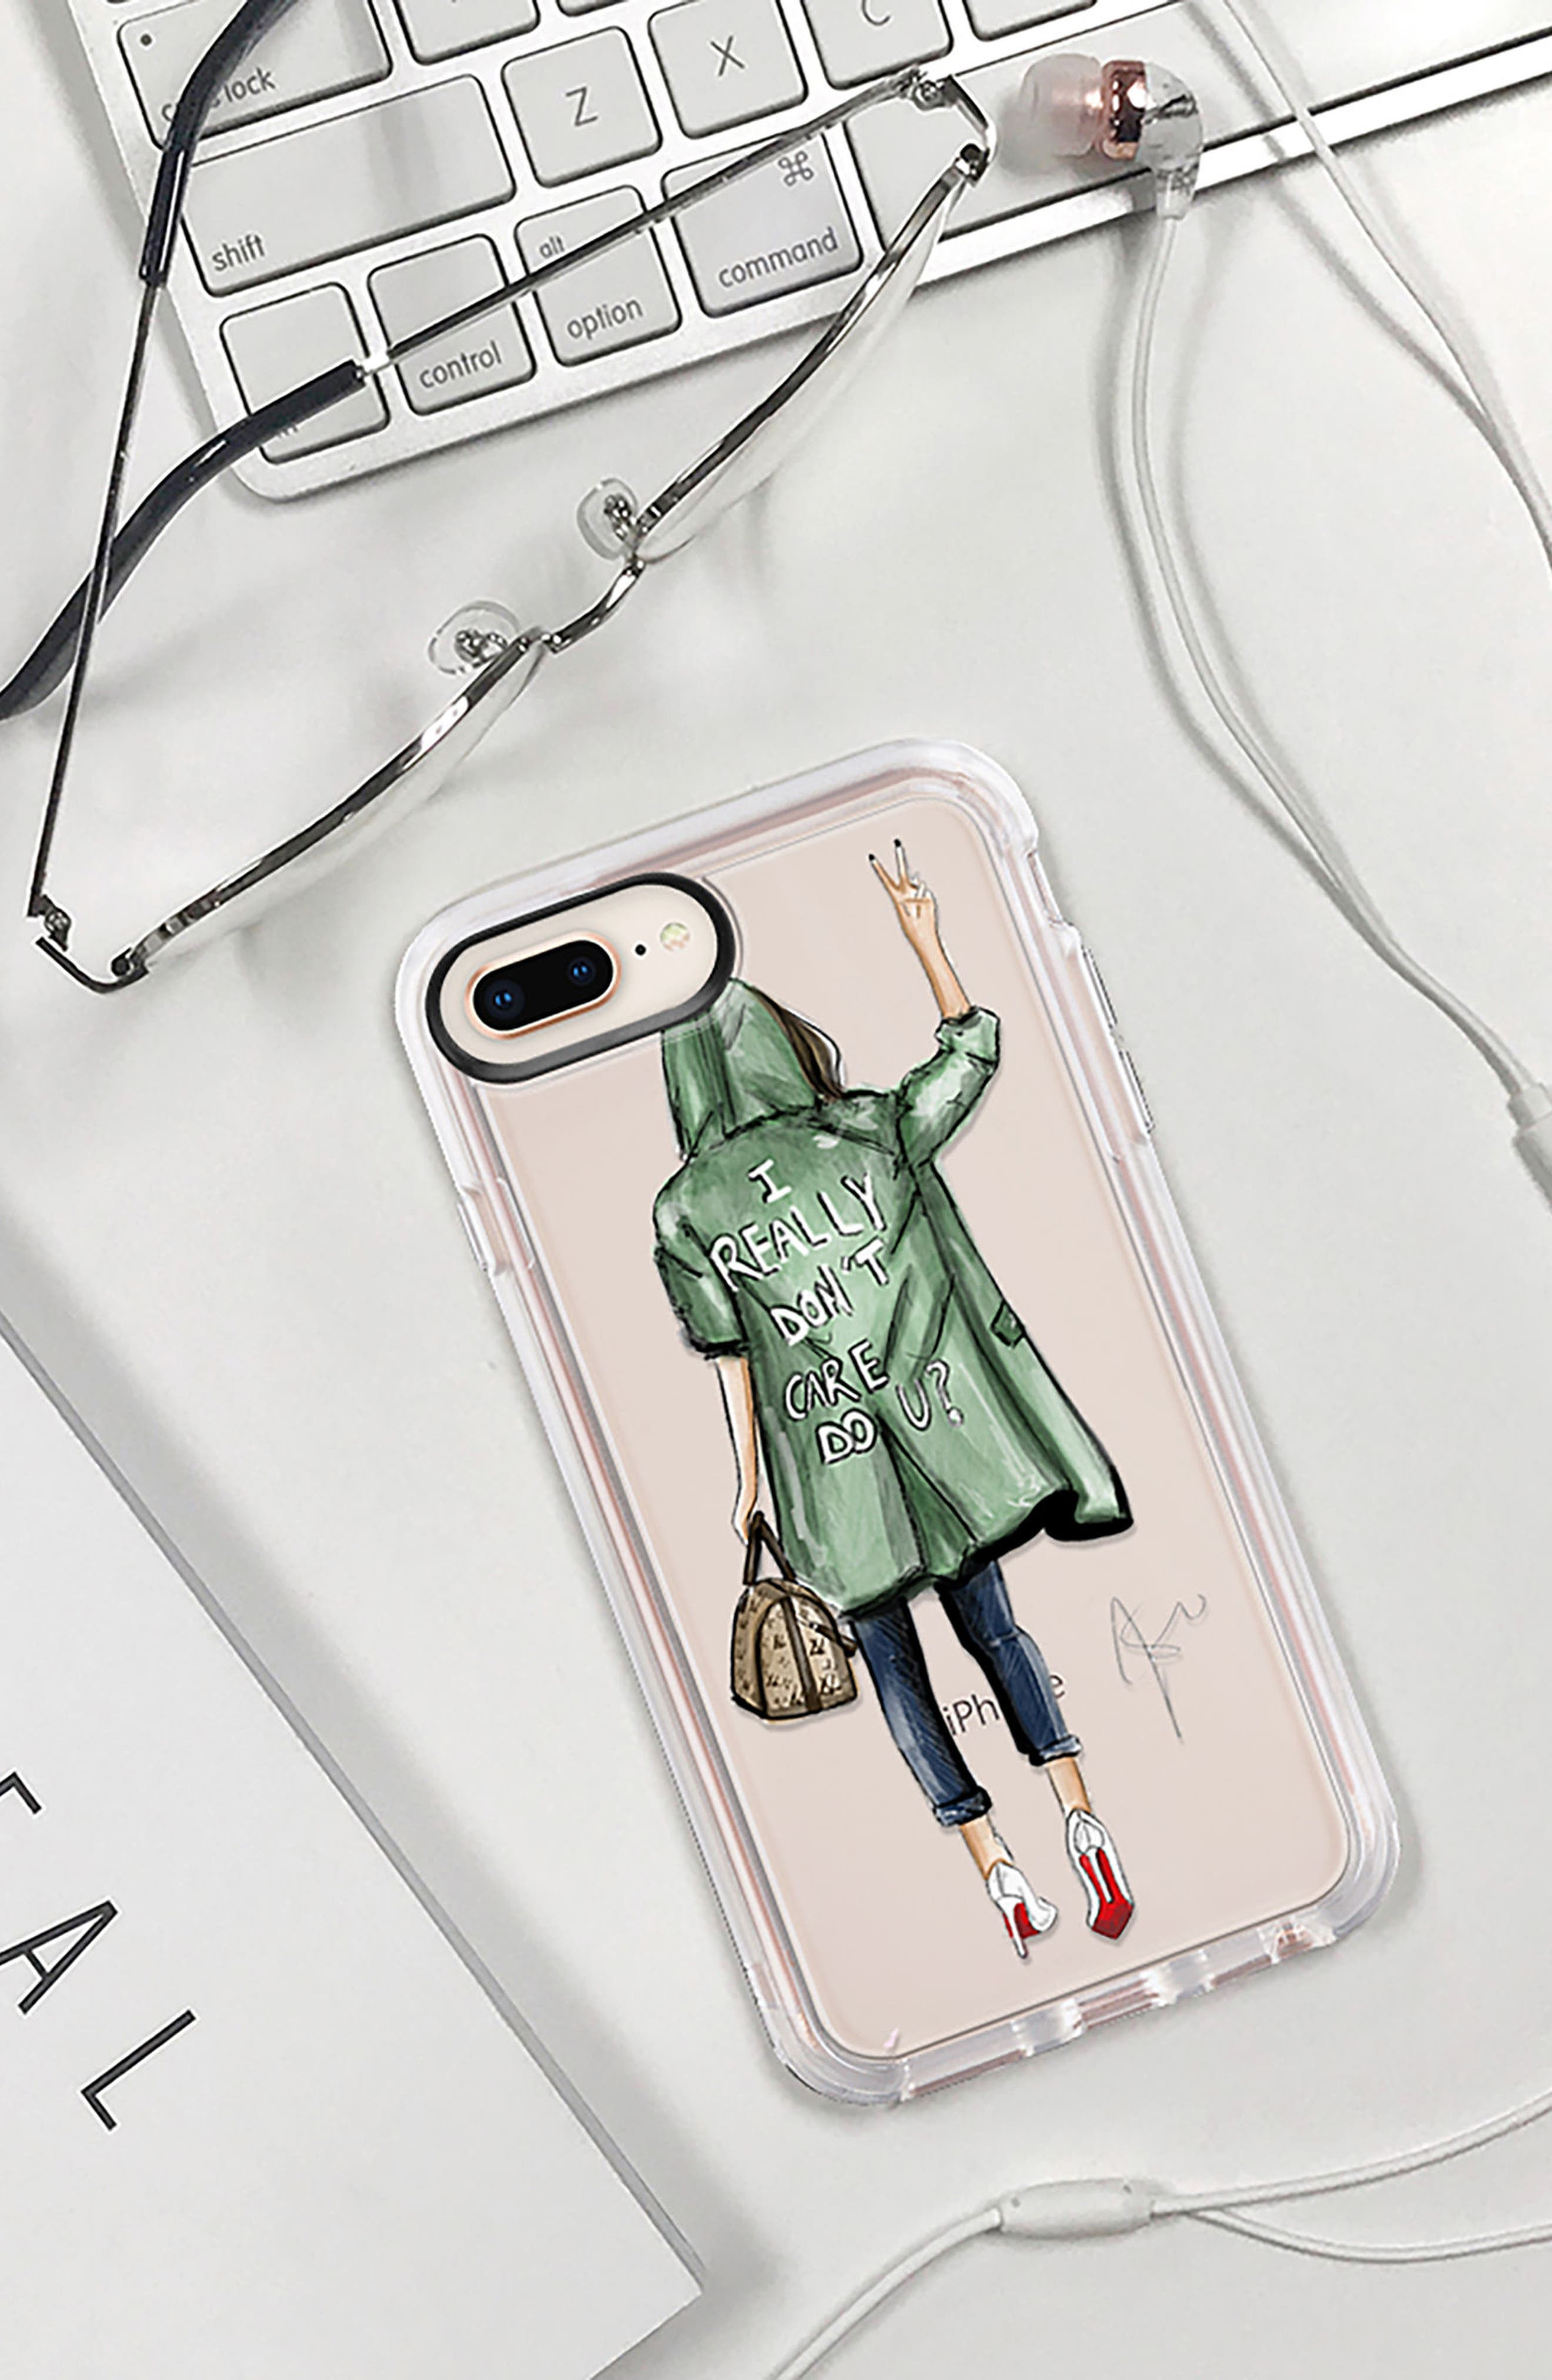 I Really Don't Care iPhone 7/8 & 7/8 Plus Case,                             Alternate thumbnail 9, color,                             300